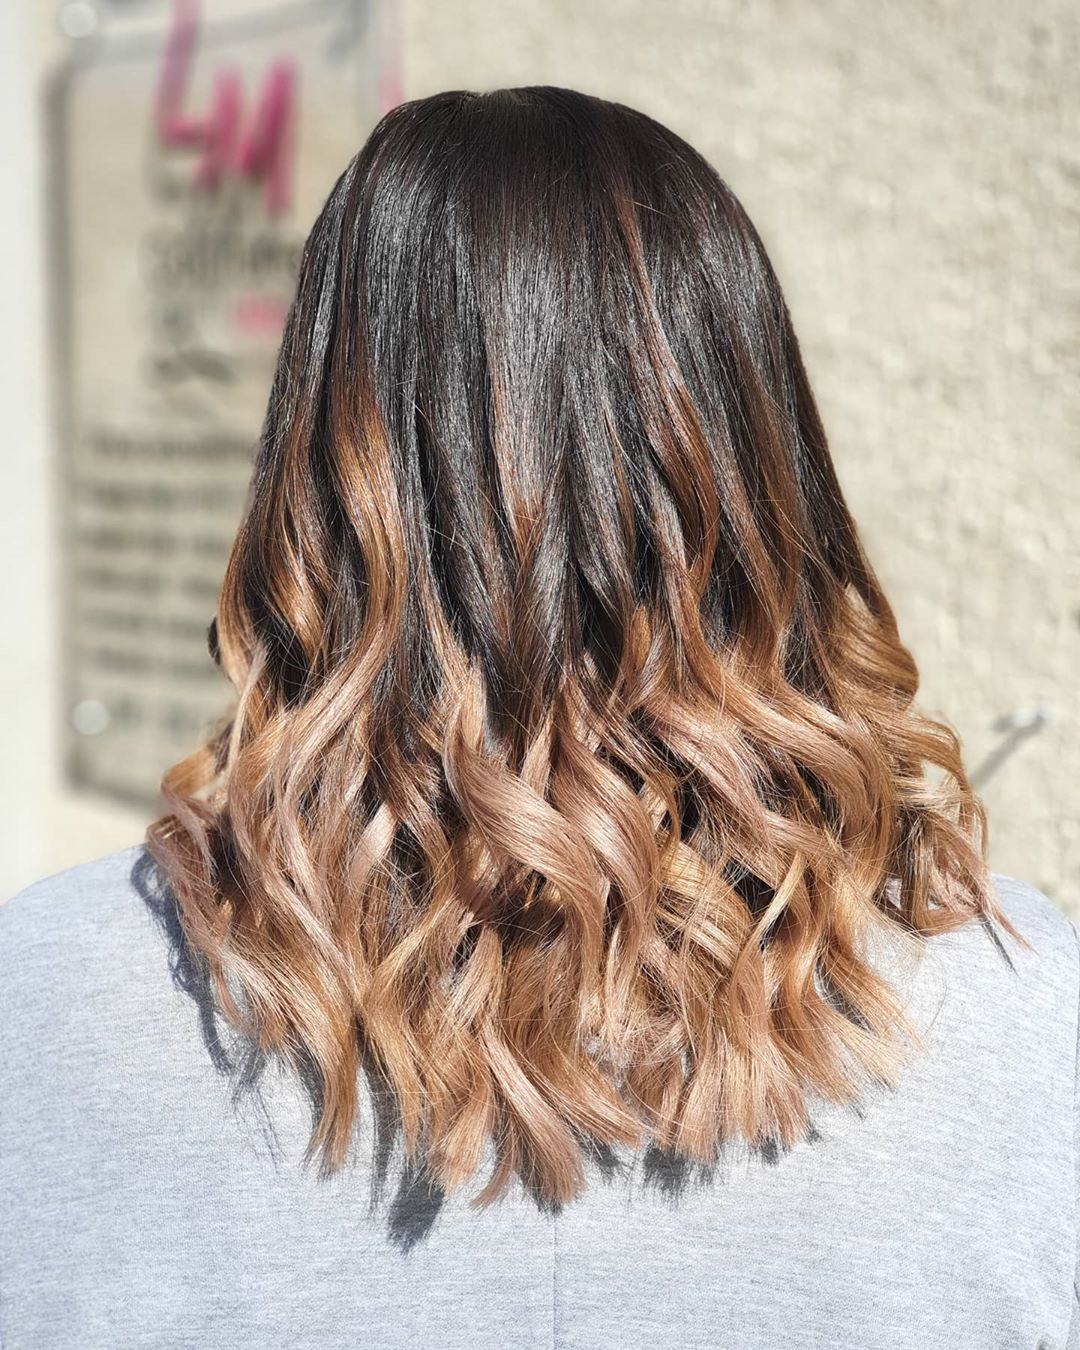 Hair Color For Morena 2020 17 Top Ideas You Should Try Photos In 2020 Hair Color For Morena Cool Hair Color Hair Color For Morena Skin